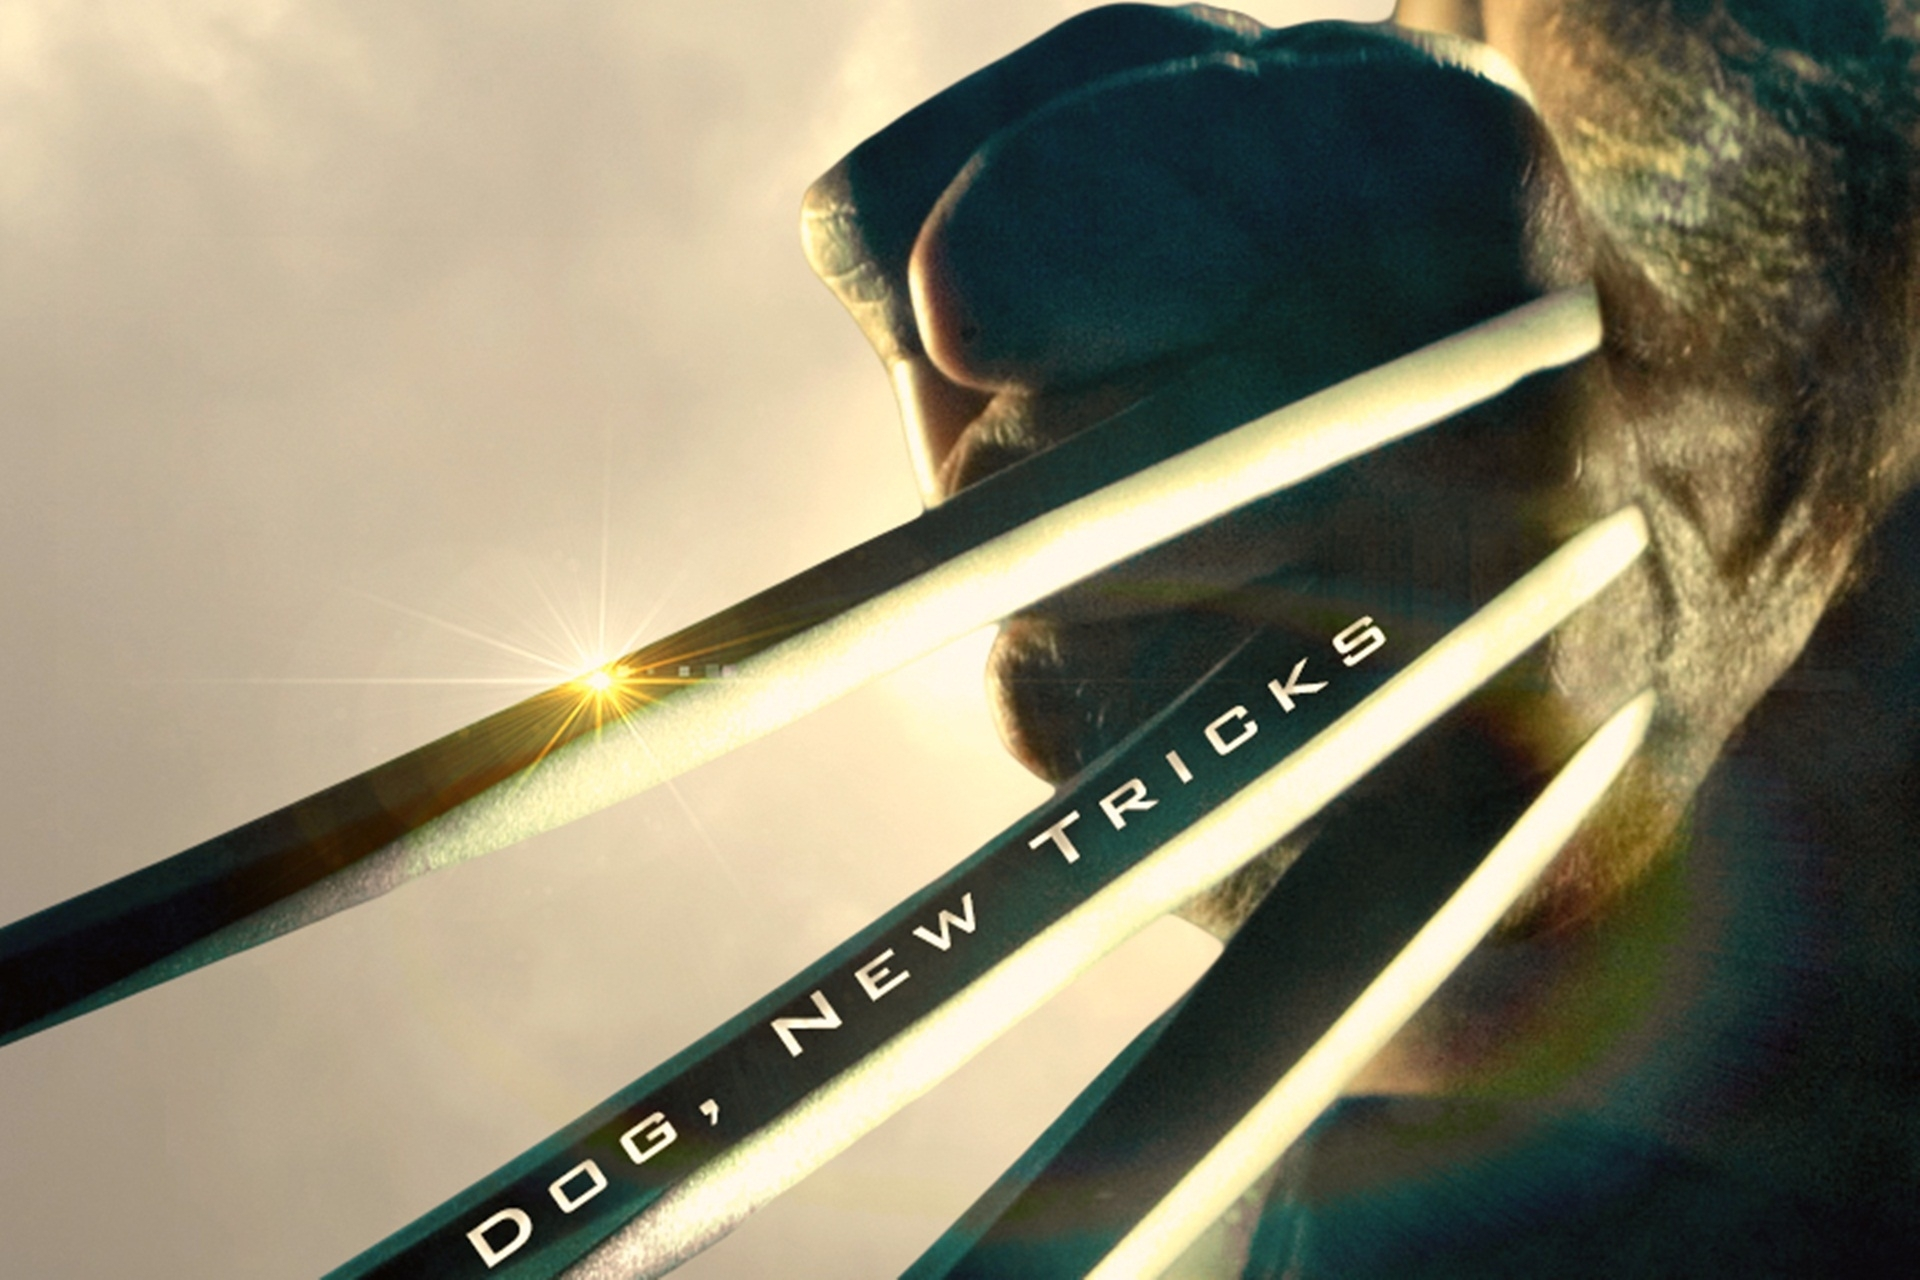 logan wallpapers hd backgrounds, images, pics, photos free